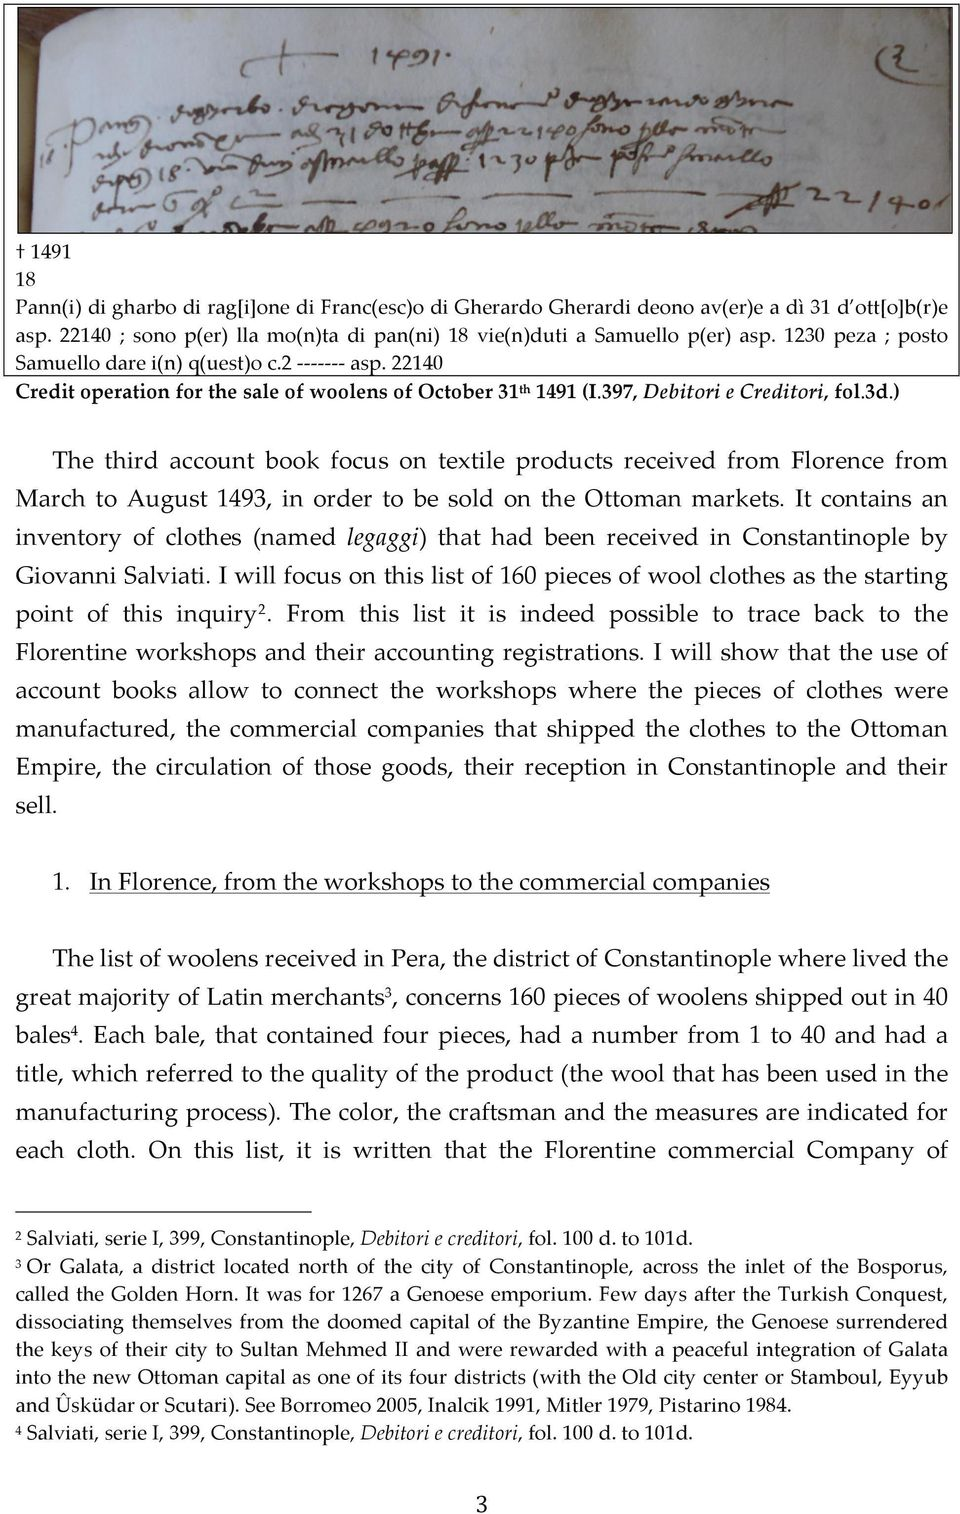 ) The third account book focus on textile products received from Florence from March to August 1493, in order to be sold on the Ottoman markets.